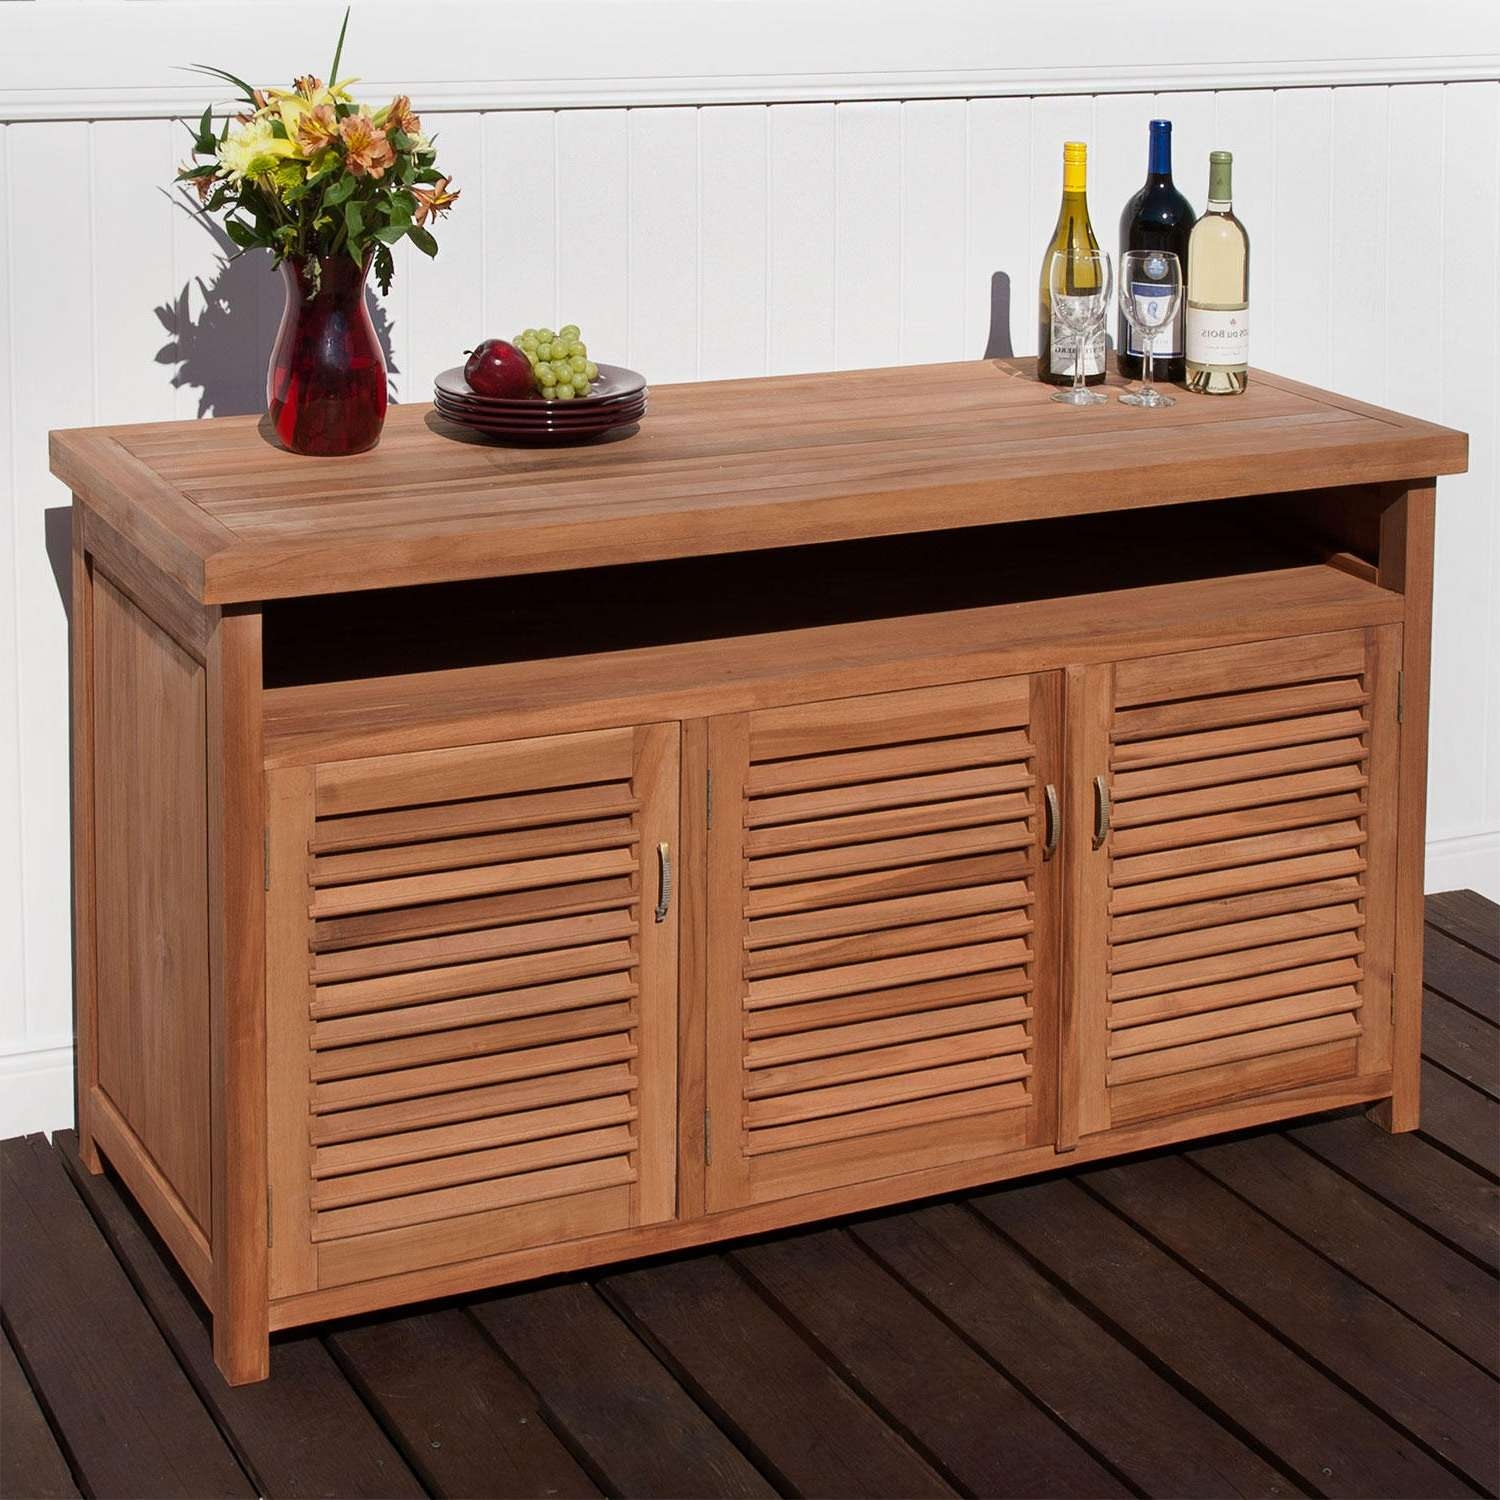 Teak Outdoor Buffet With Storage – Outdoor With Outdoor Sideboards Cabinets (View 19 of 20)